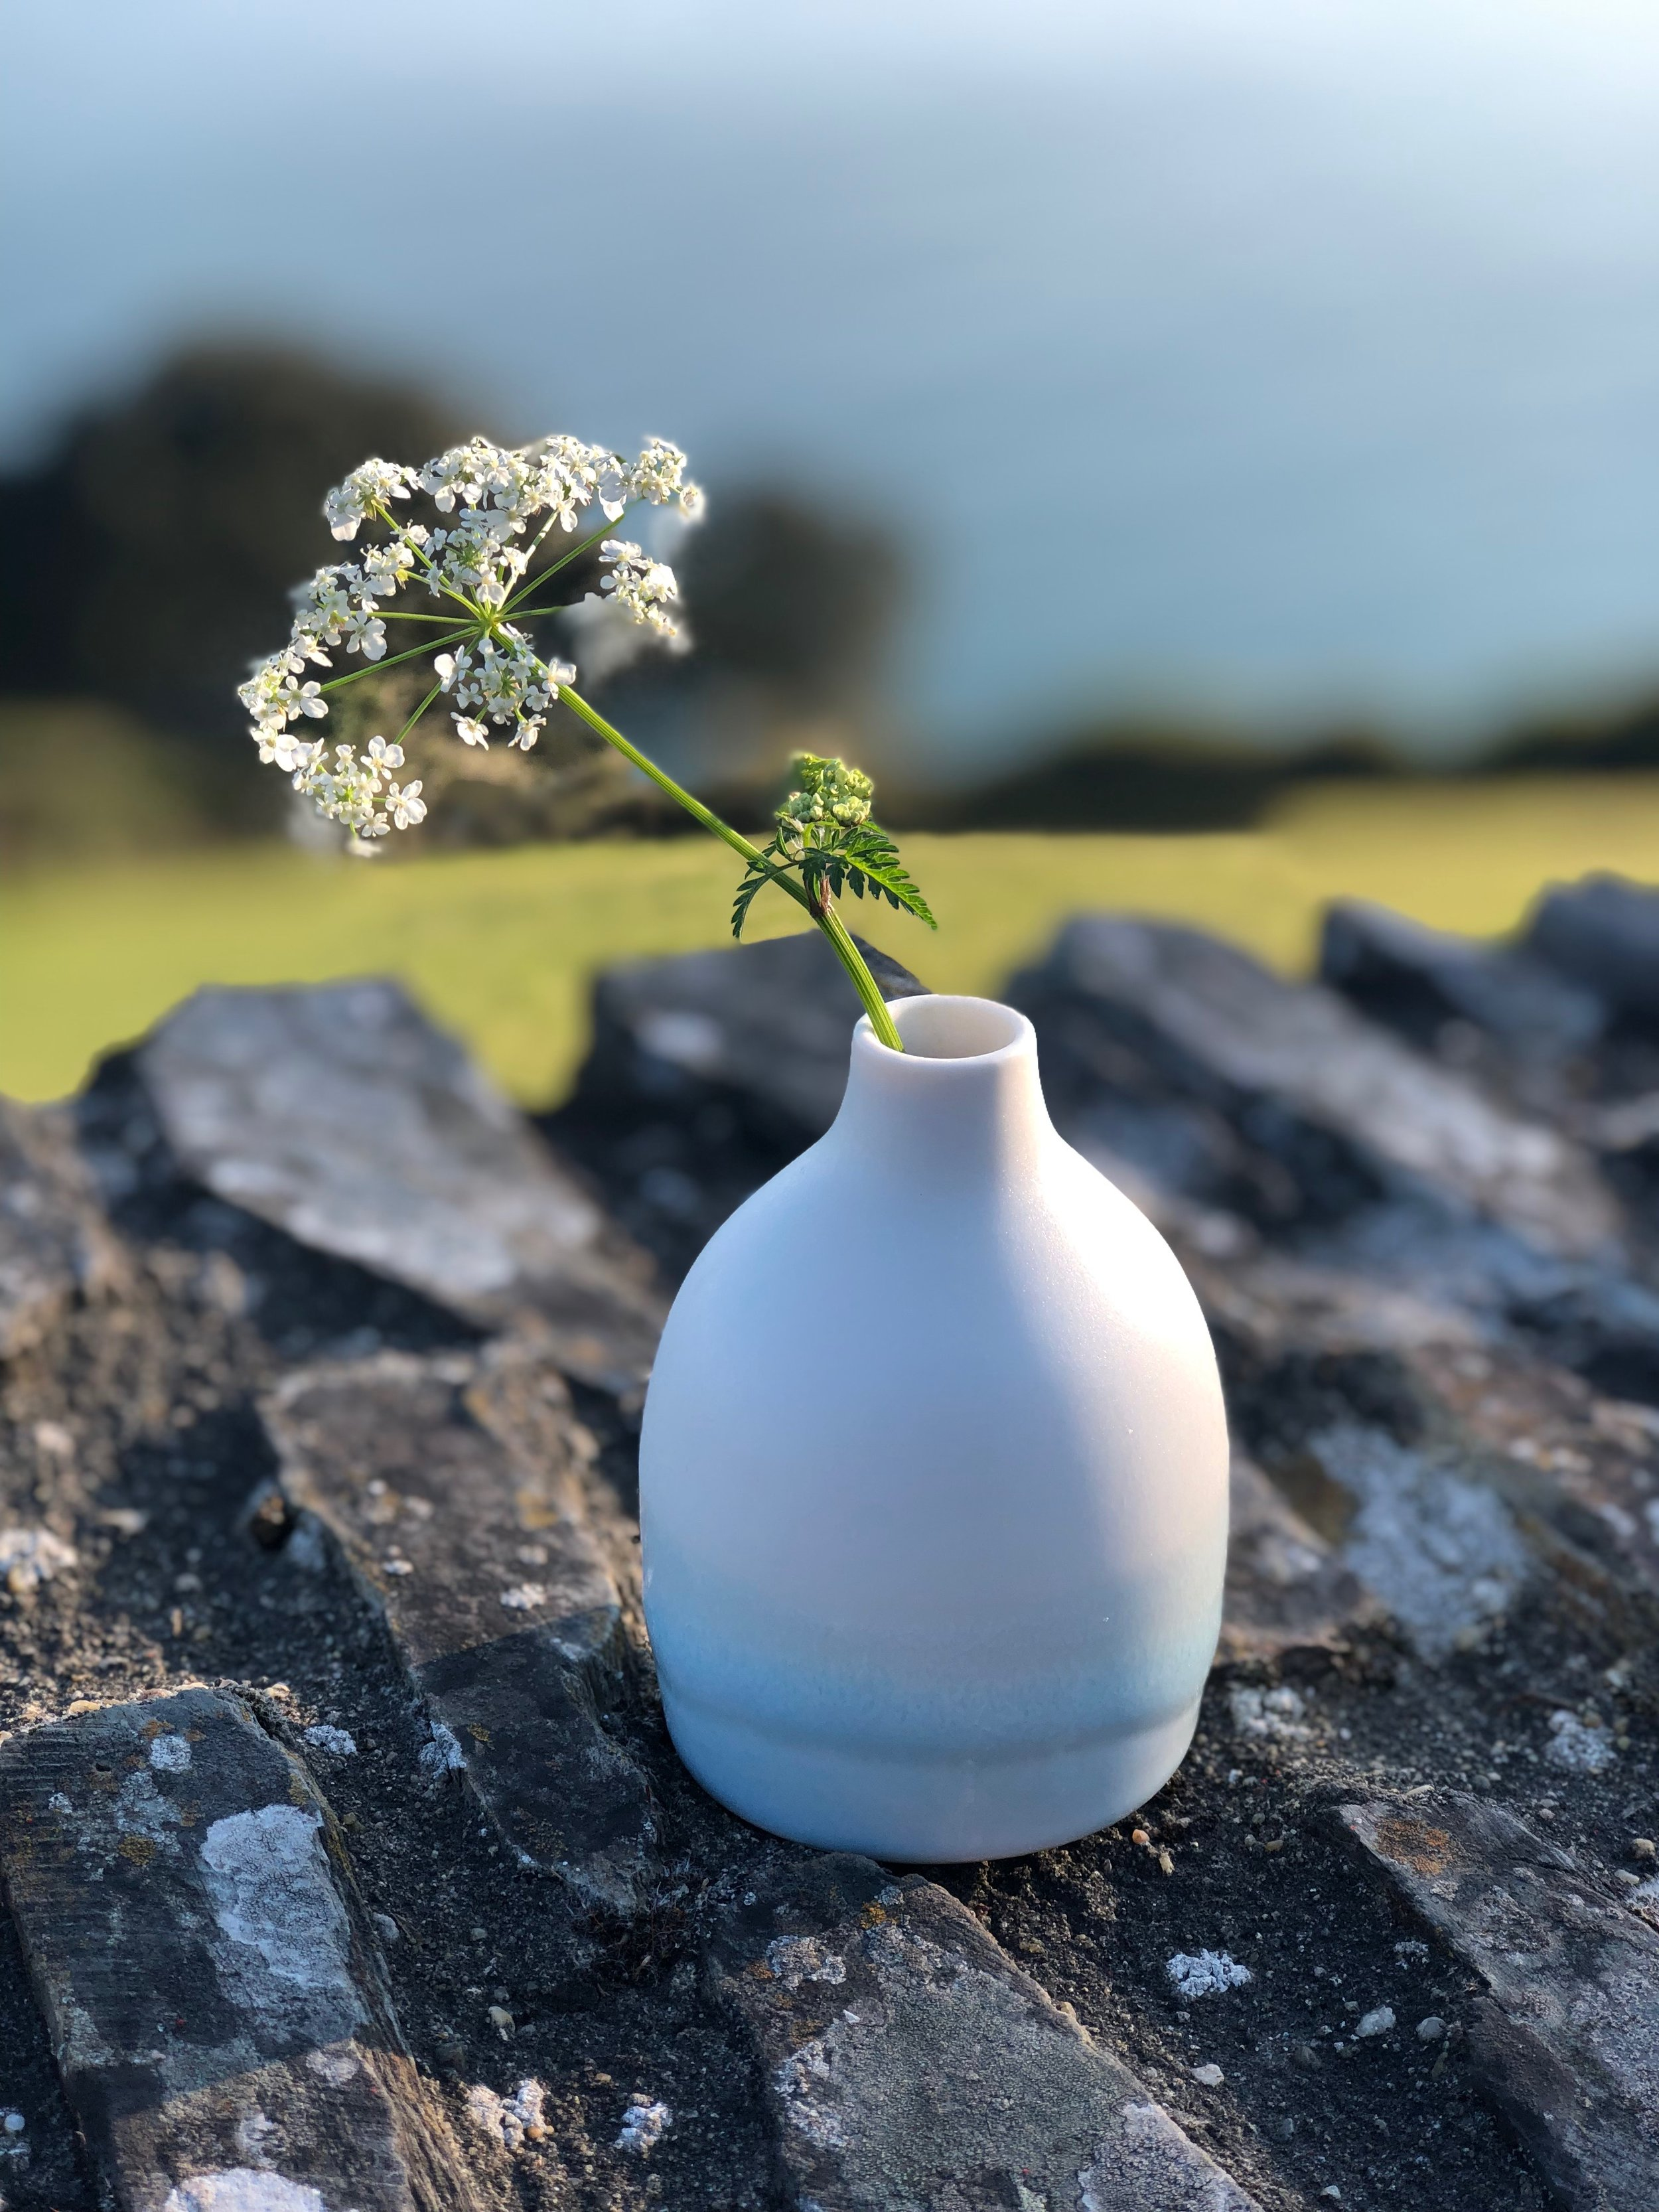 'Sea-breeze' bud vase taken on a Devonshire stone wall, overlooking the sea at Blackpool Sands.